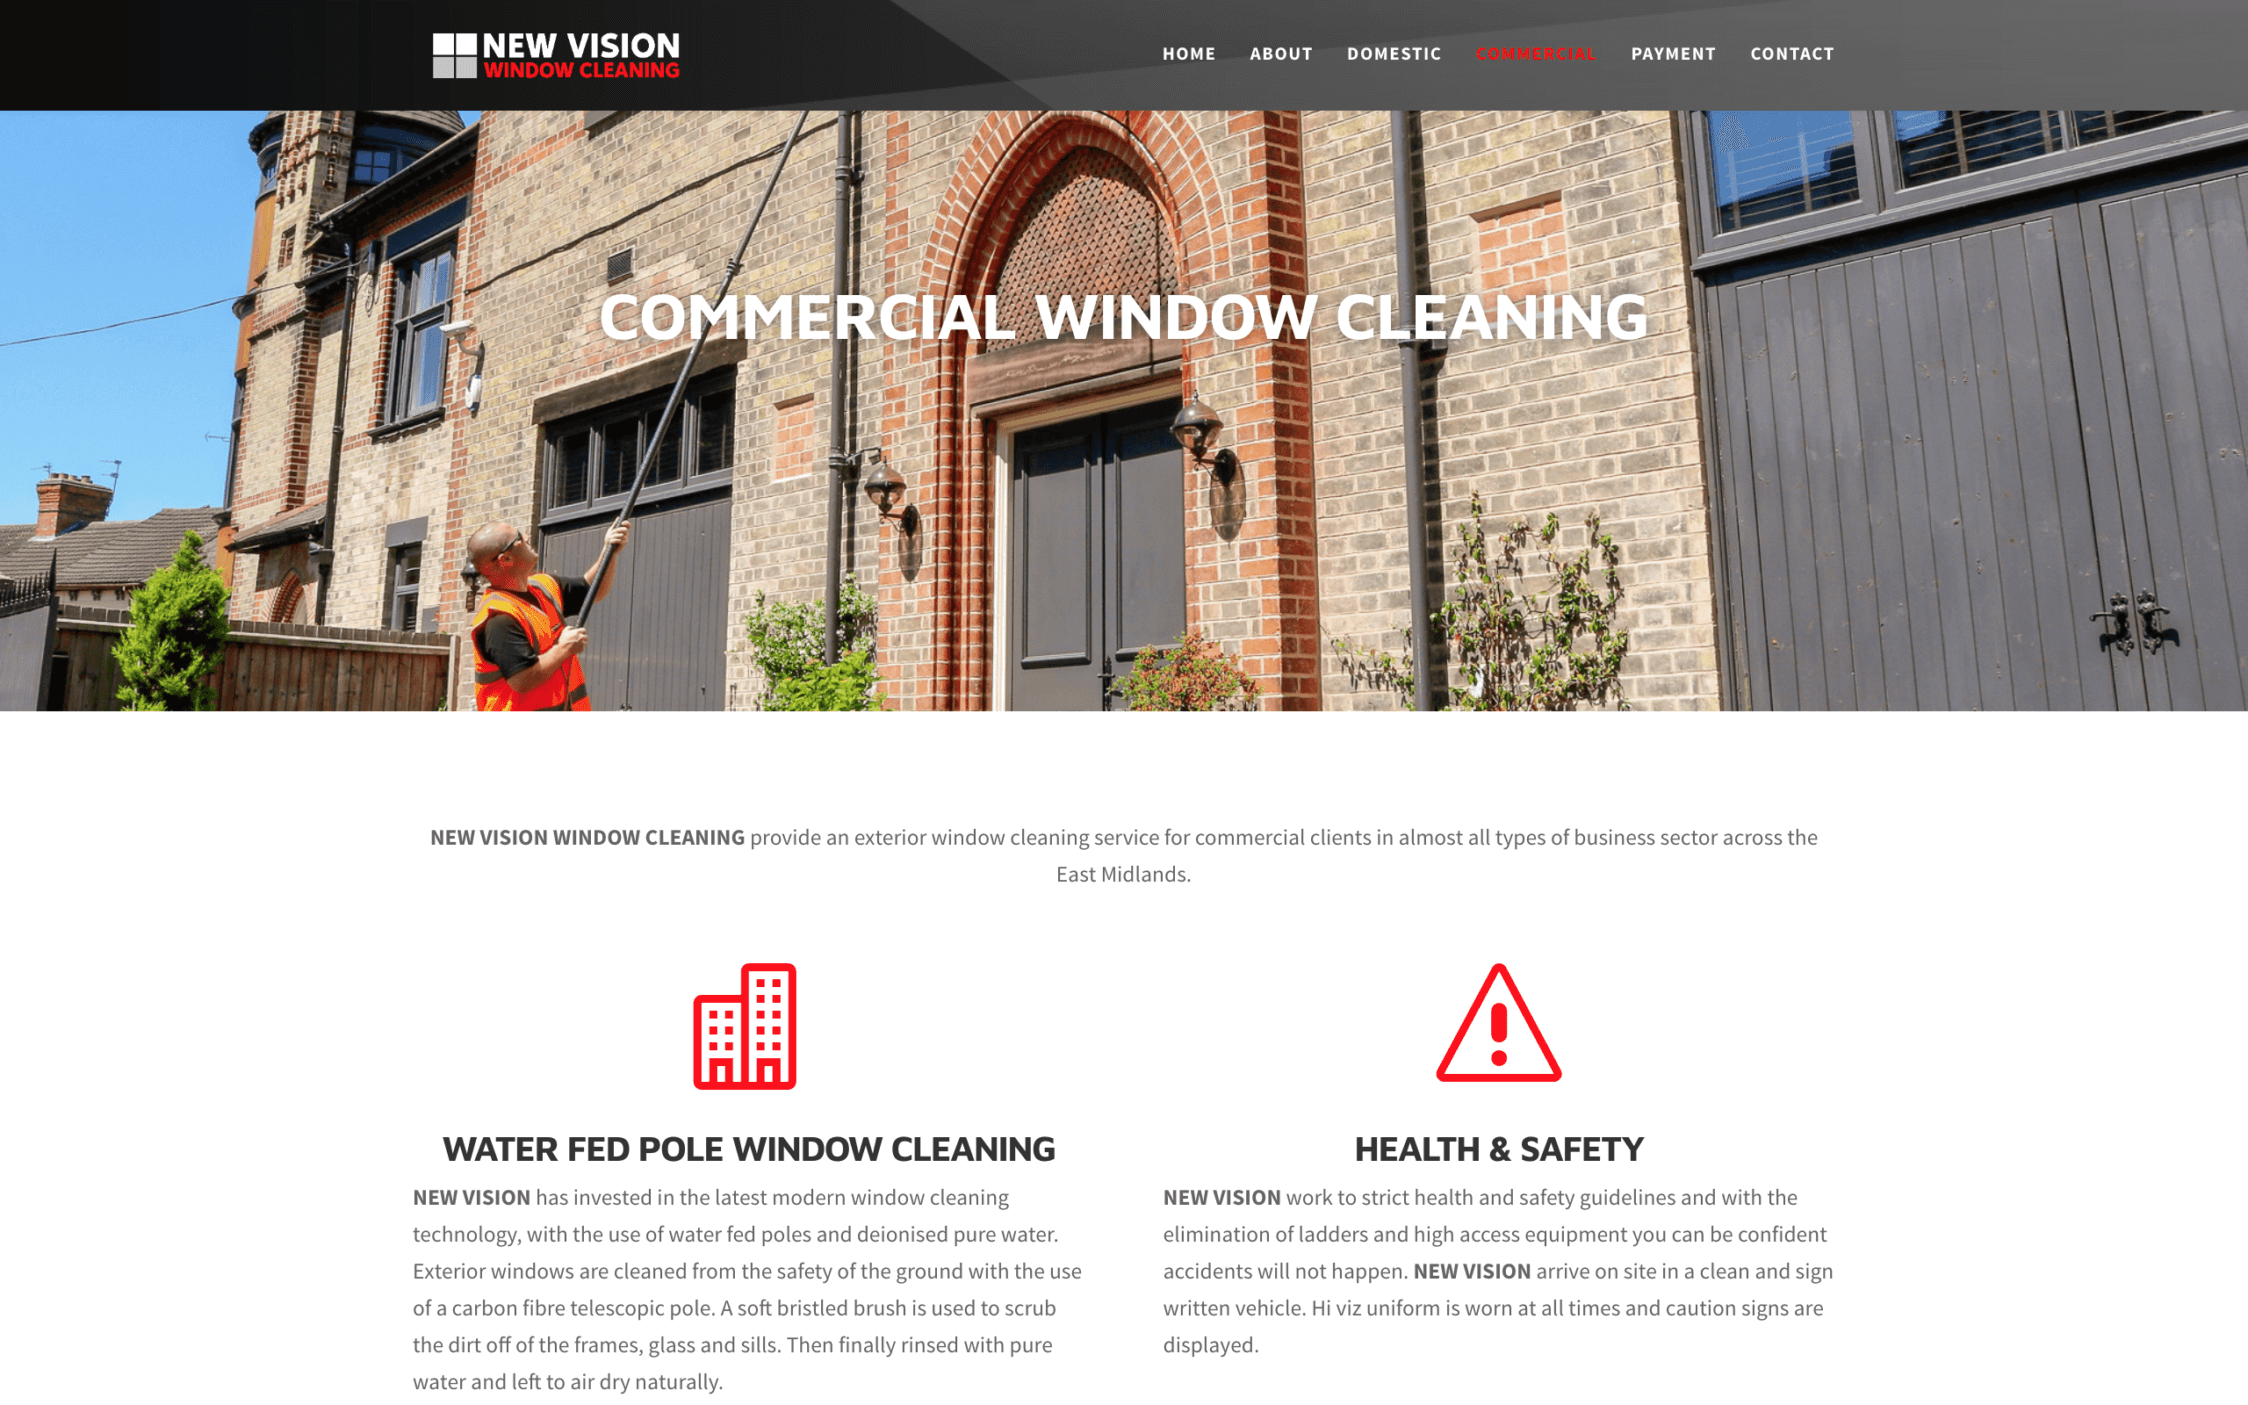 New Vision Window Cleaning Screenshotat 11.47.55 2 1 - Website design for window cleaning business